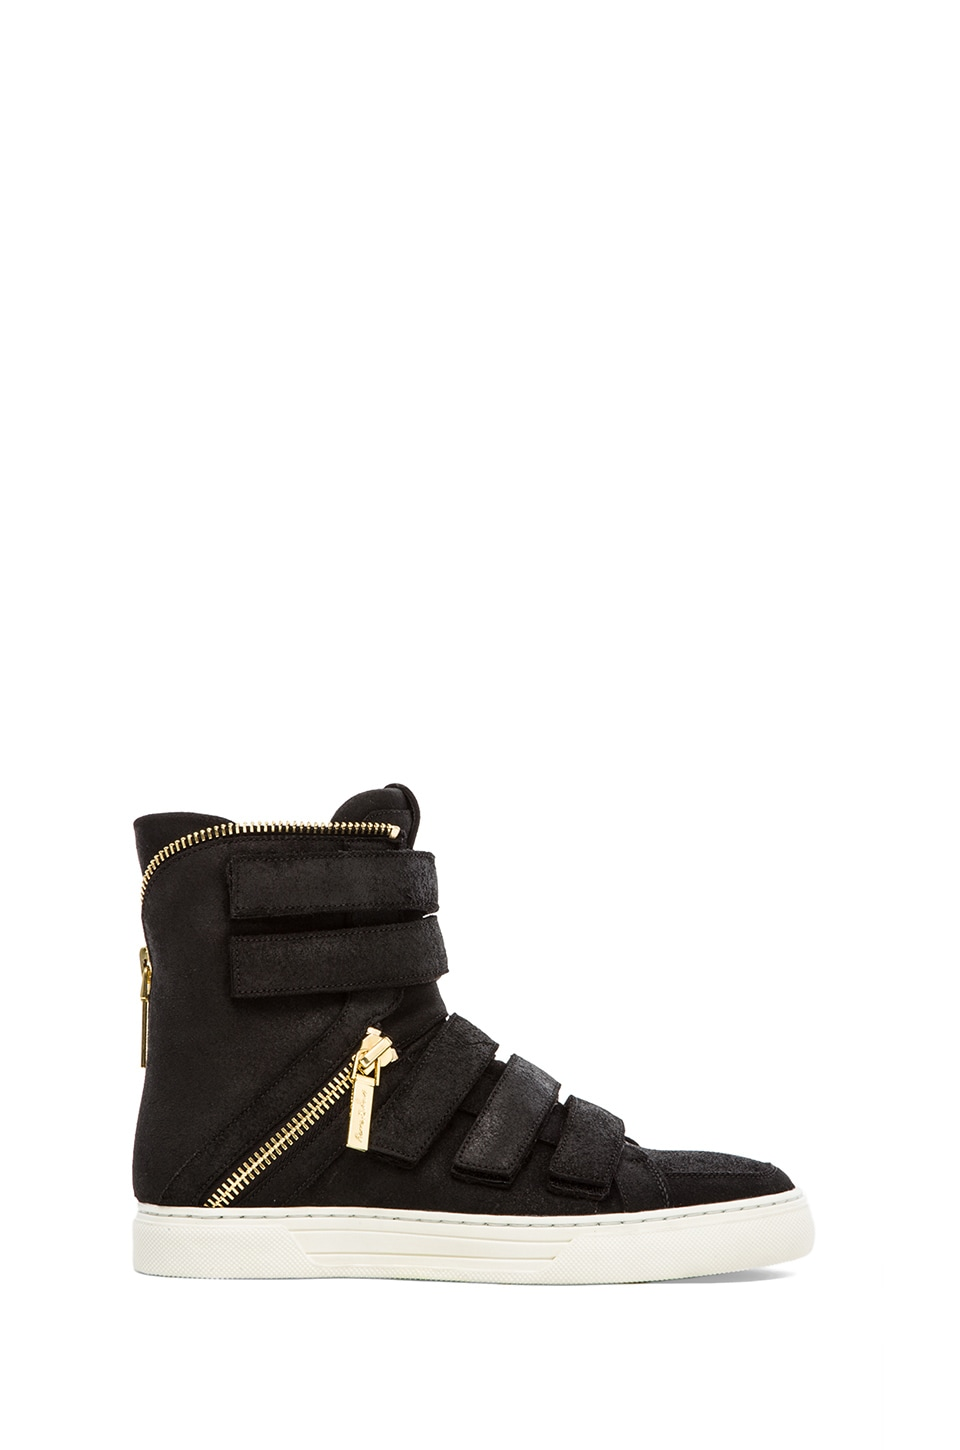 Pierre Balmain Sneaker in Black